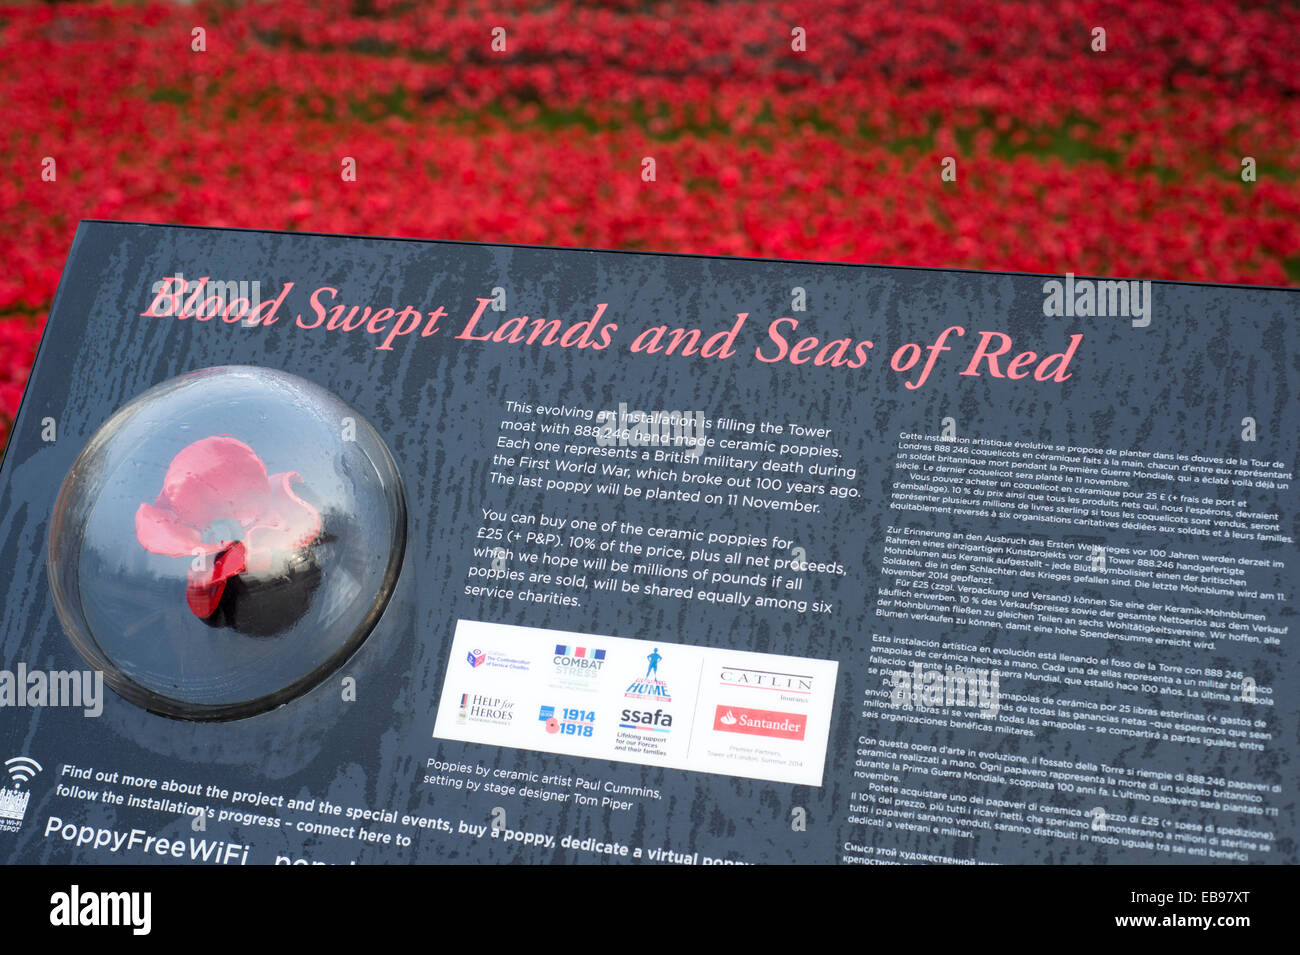 Ceramic poppies at the Blood Swept Lands and Seas of Red installation at the Tower of London, England, UK - Stock Image